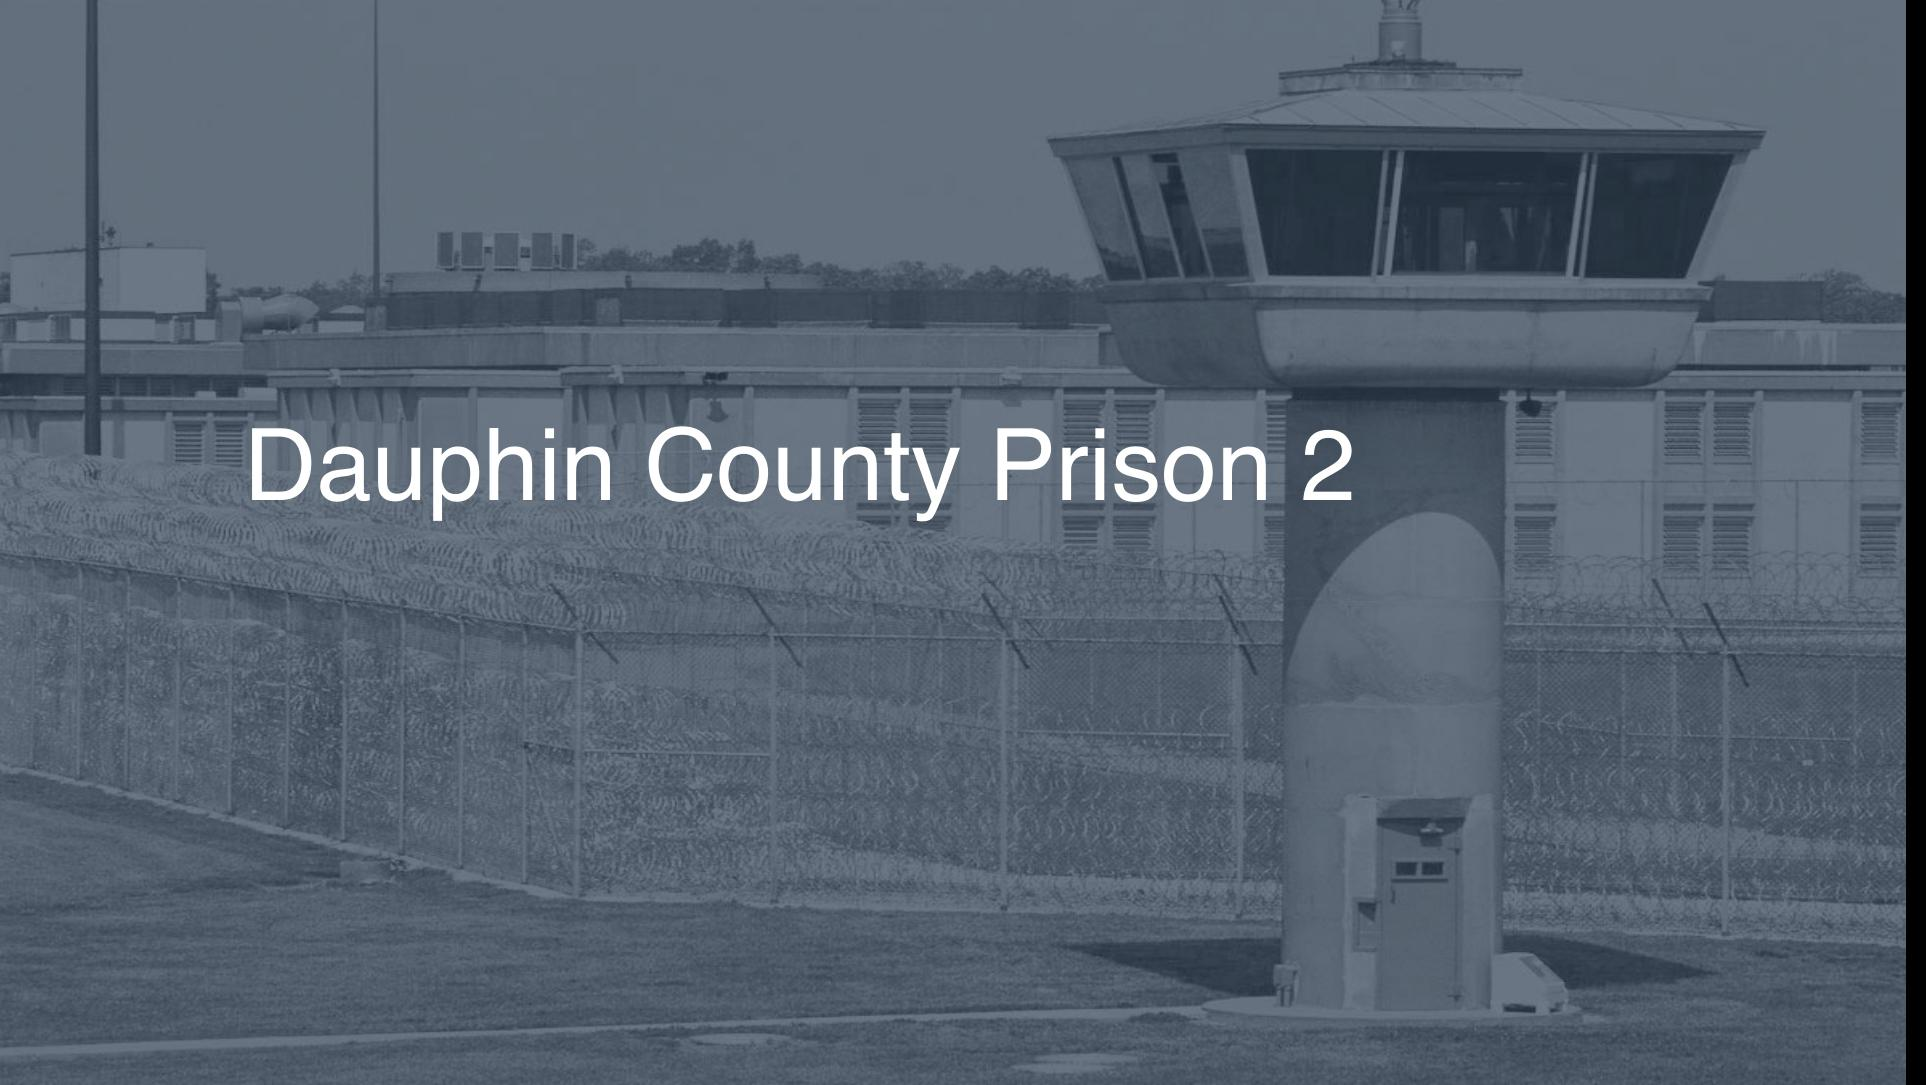 Dauphin County Prison Inmate Search, Lookup & Services